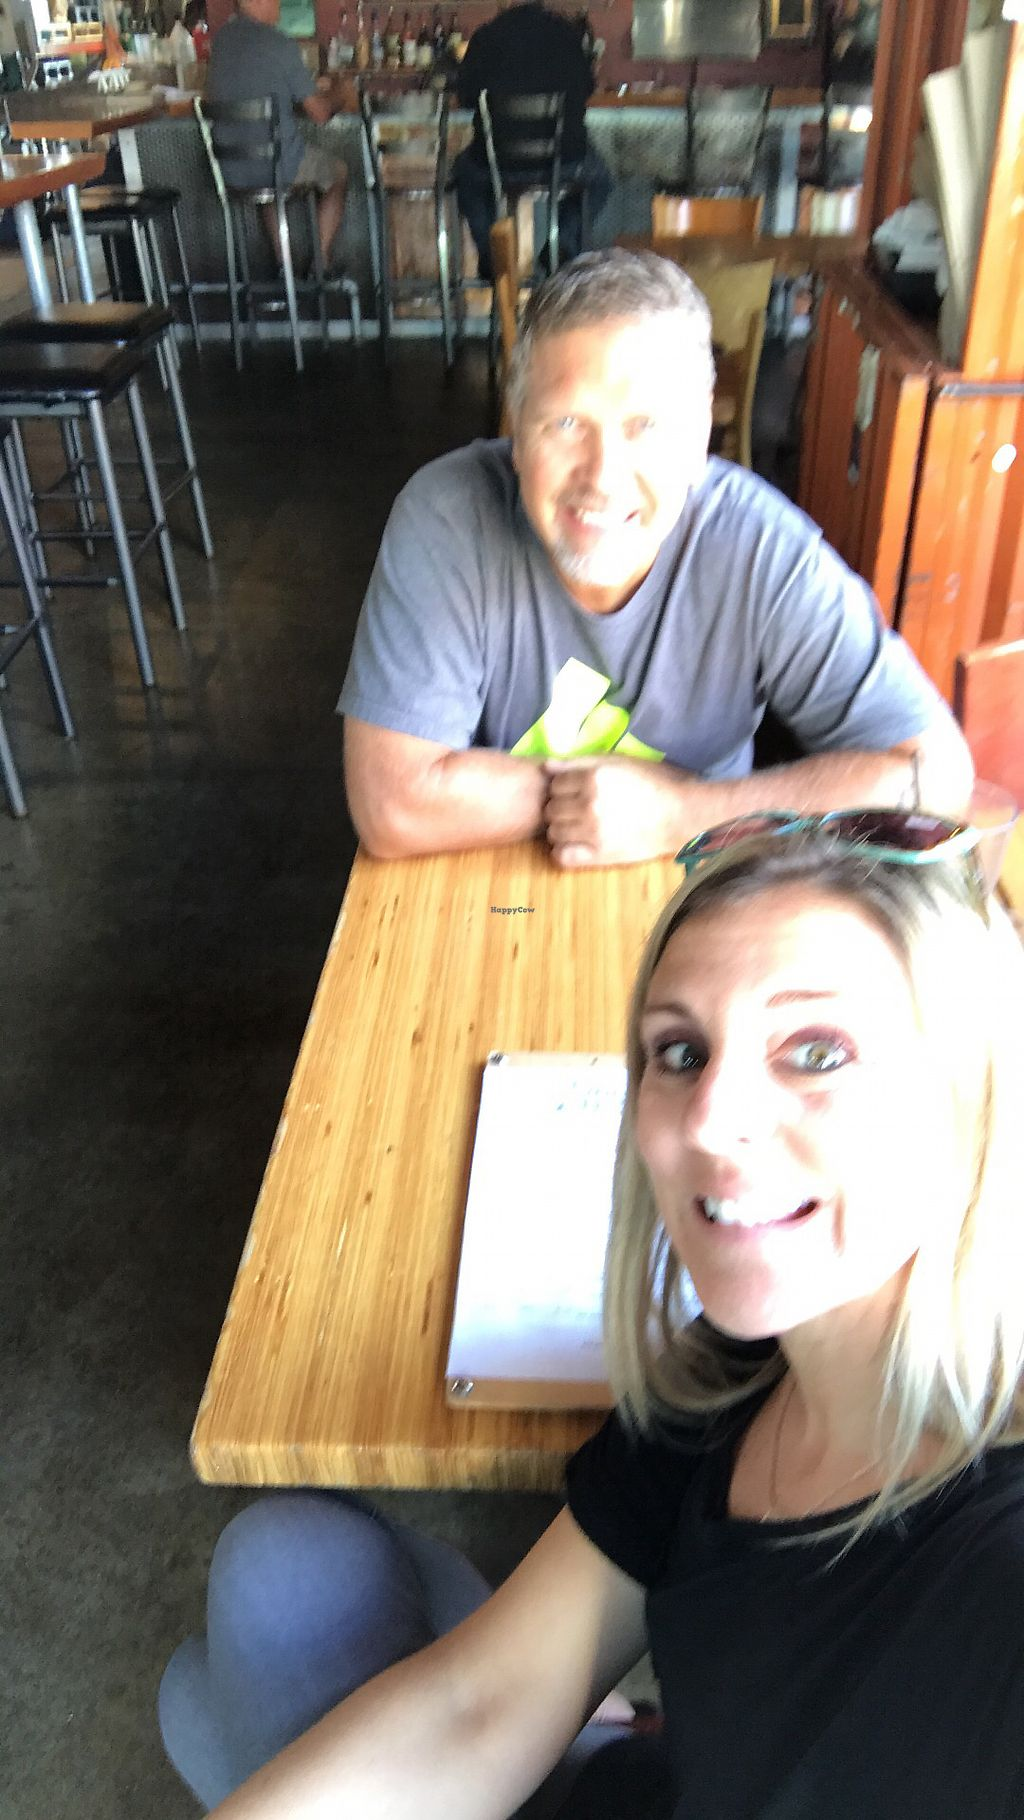 """Photo of Pig Minds Brewing  by <a href=""""/members/profile/JennyVandervortKoch"""">JennyVandervortKoch</a> <br/>first time here! love this place  <br/> August 14, 2017  - <a href='/contact/abuse/image/32686/292740'>Report</a>"""